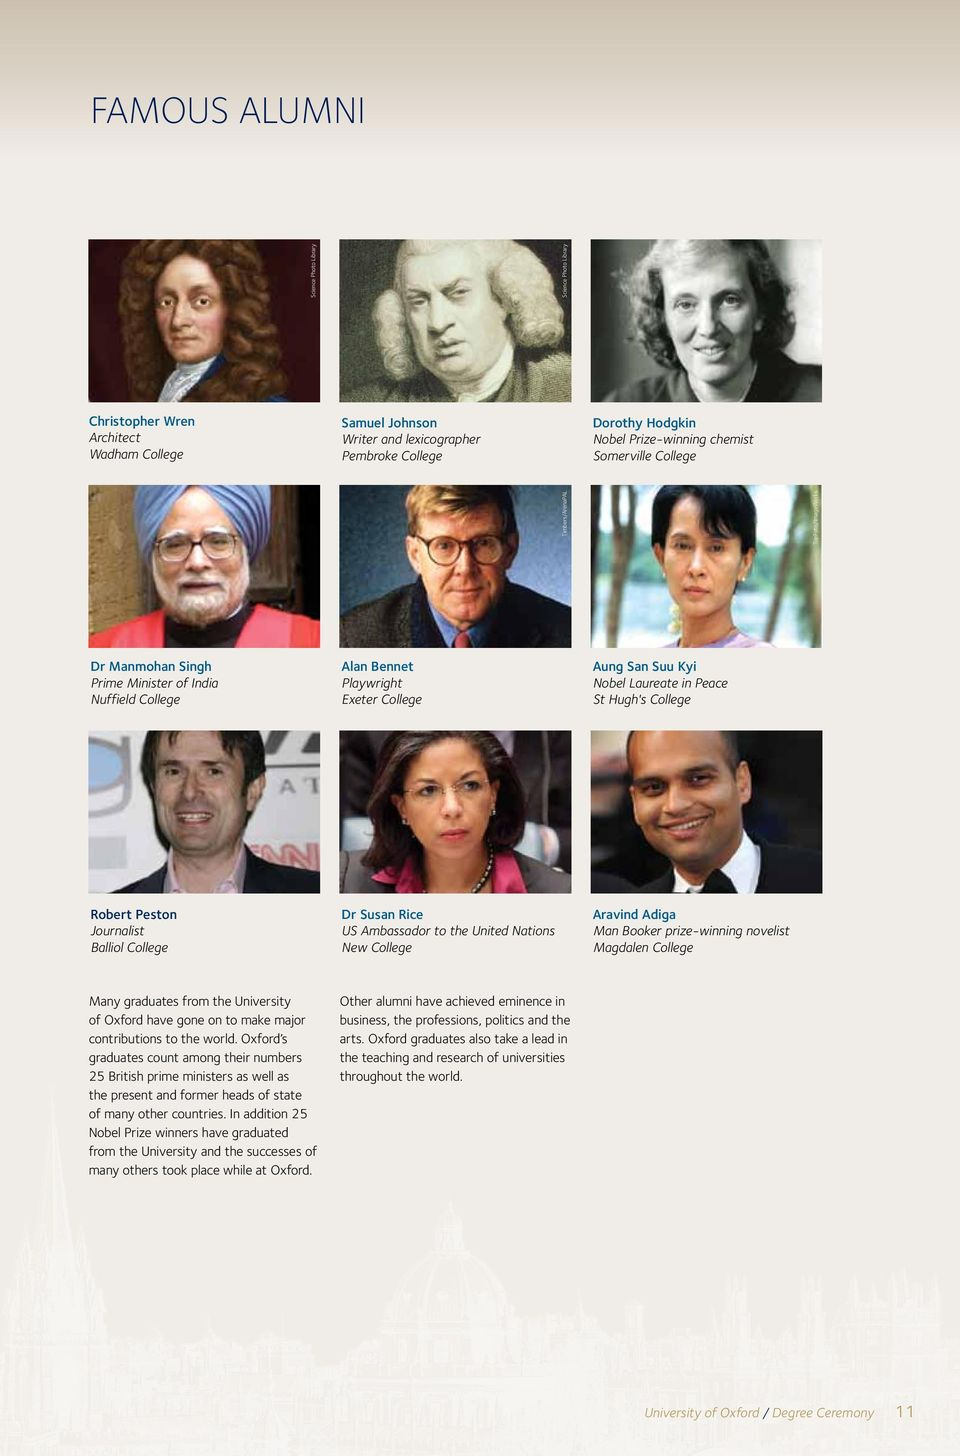 Peace St Hugh's College Robert Peston Journalist Balliol College Dr Susan Rice US Ambassador to the United Nations New College Aravind Adiga Man Booker prize-winning novelist Magdalen College Many